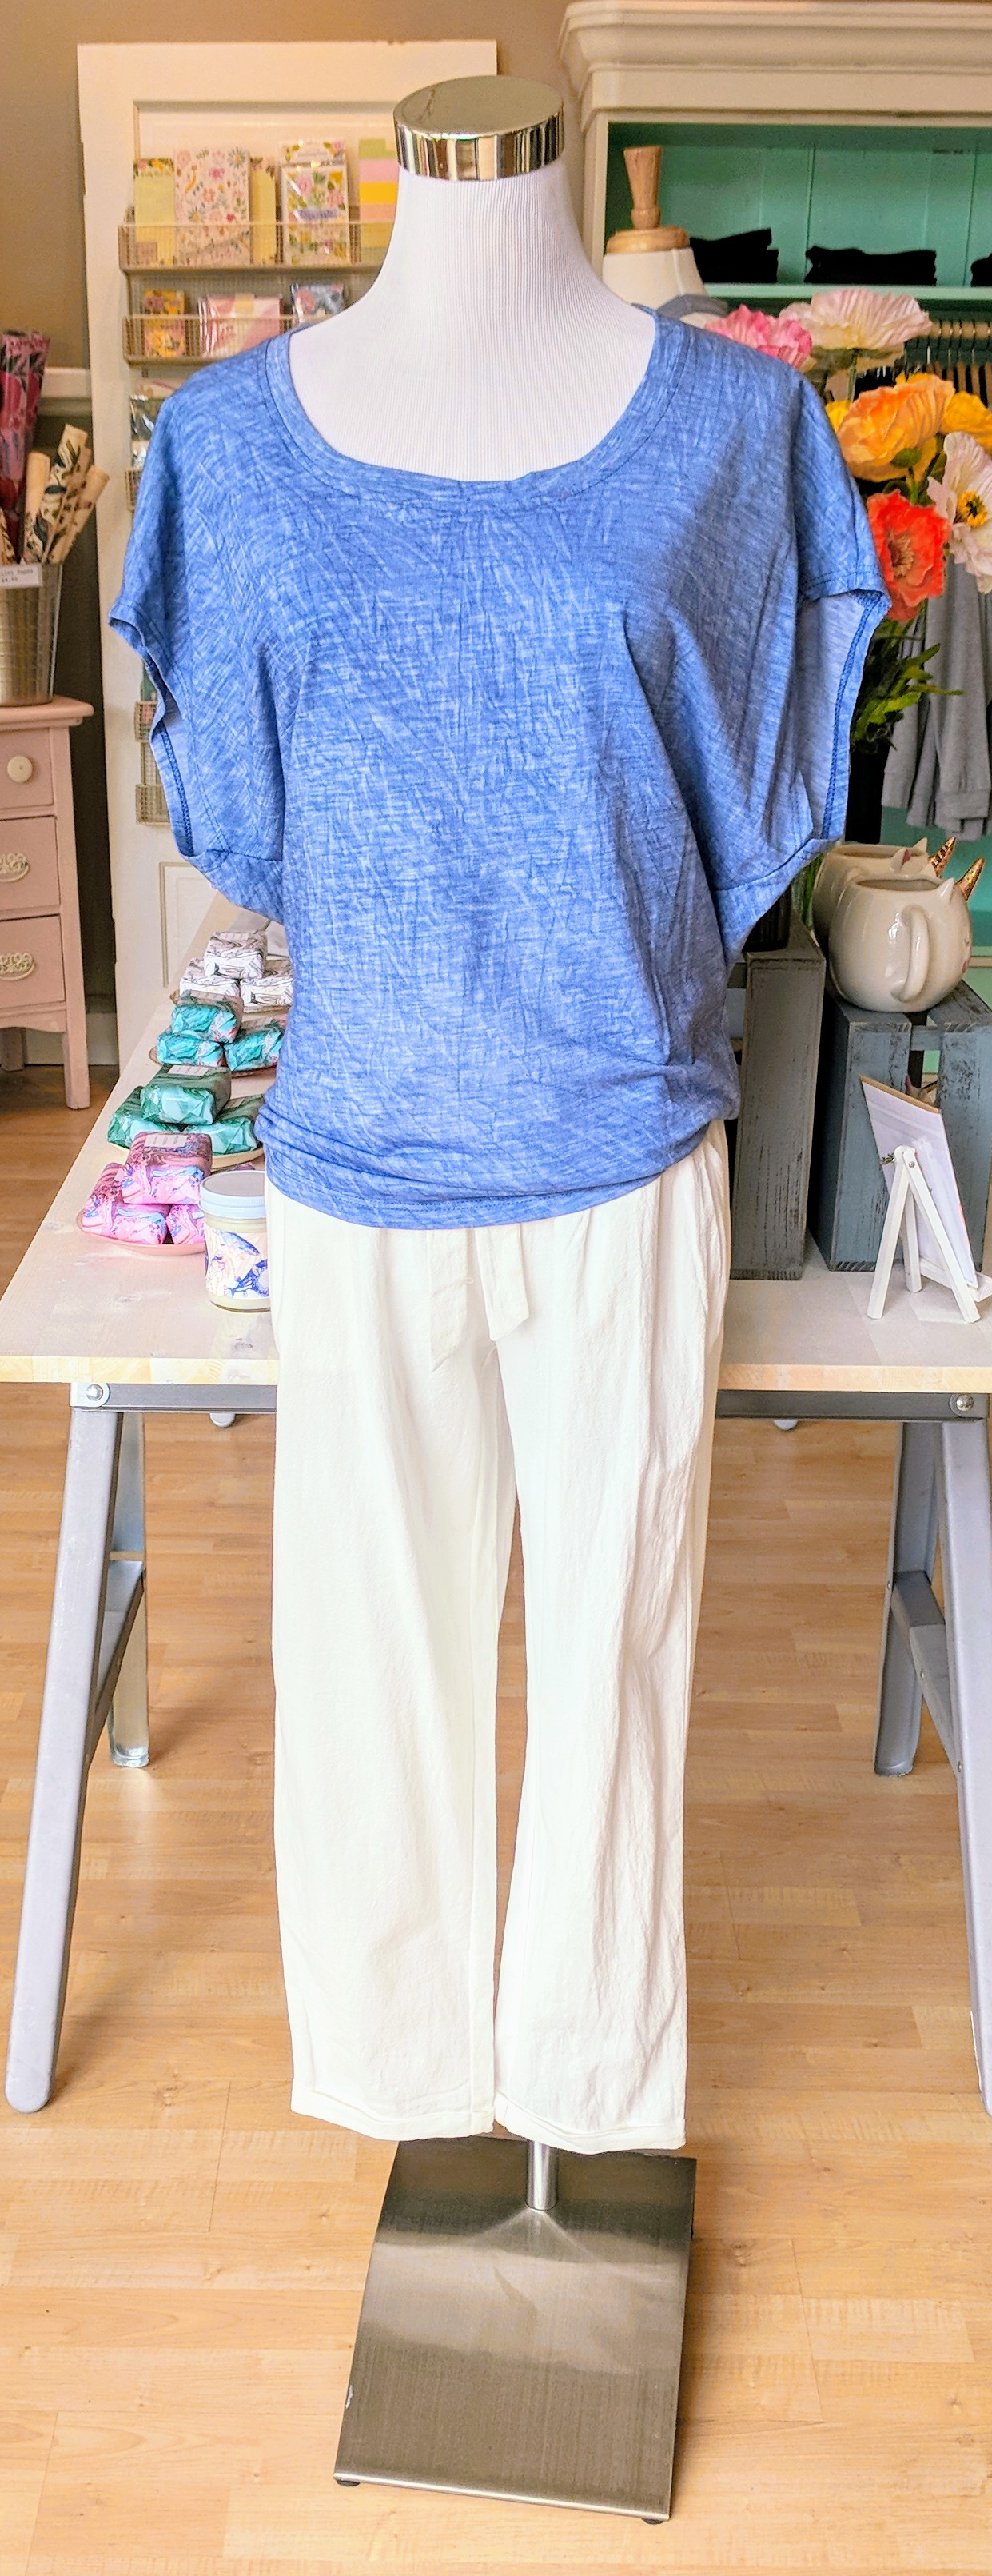 White linen pant with tie waist band. Blue knit top with dolman sleeve.